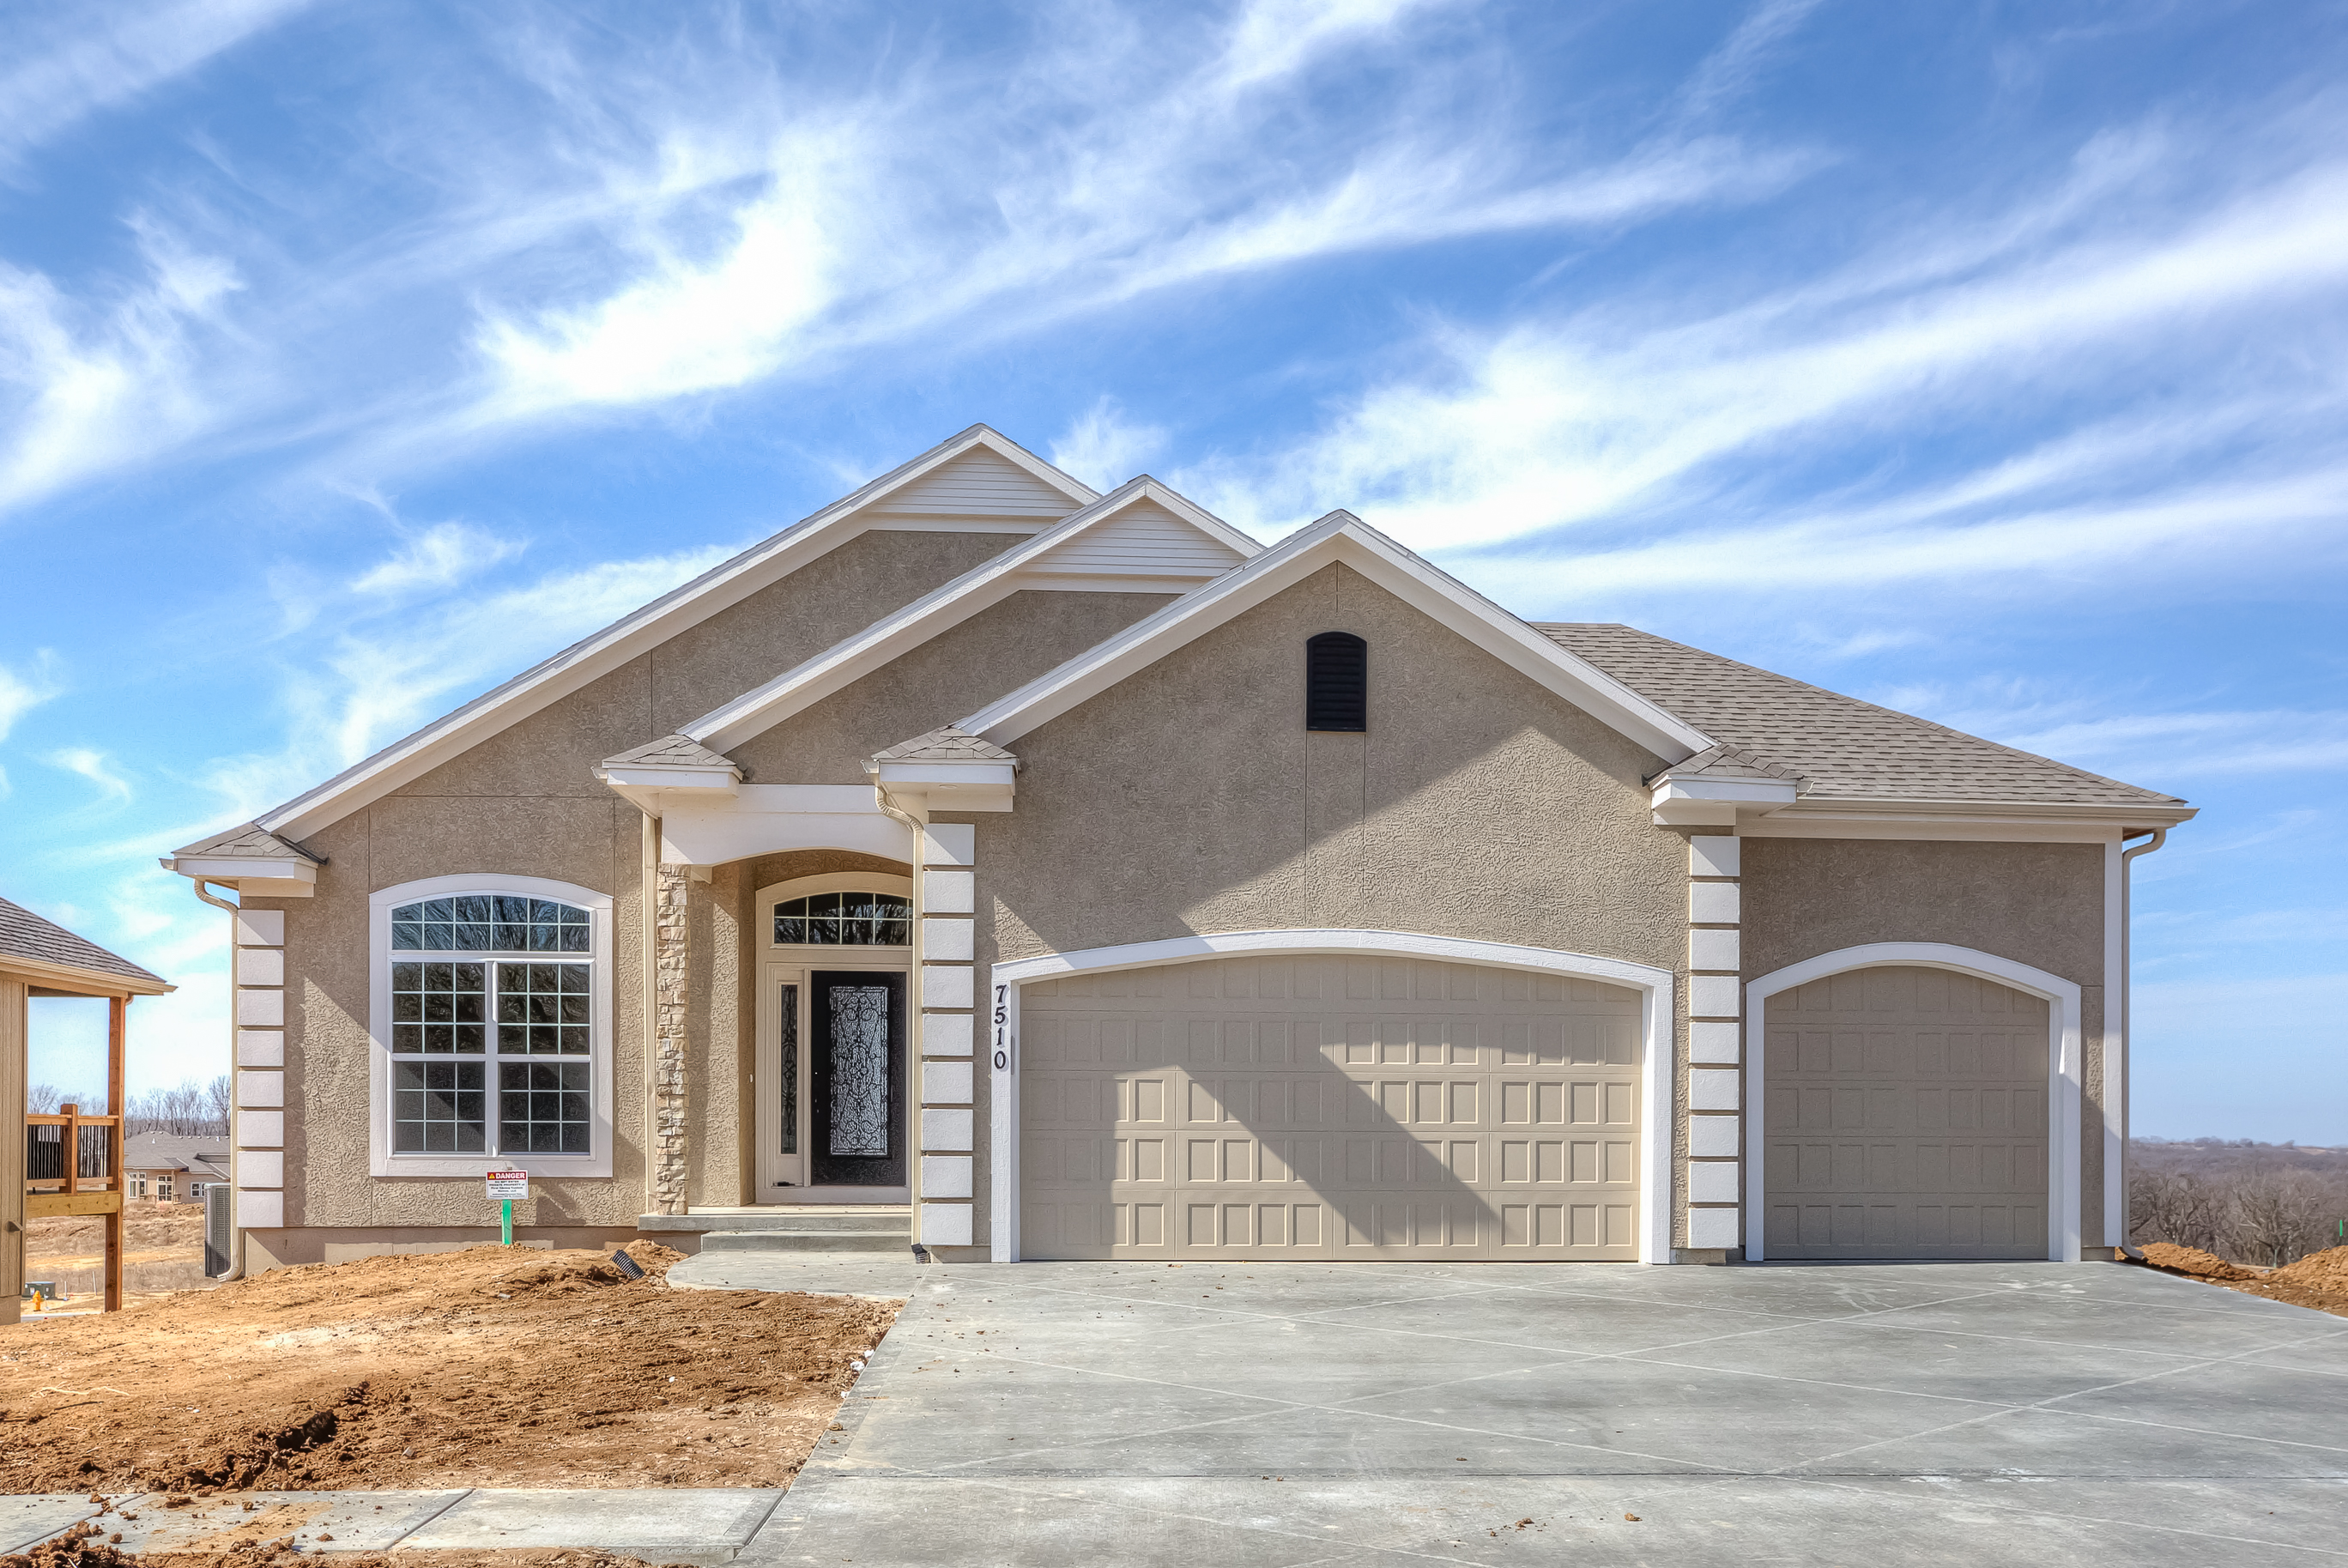 Chapel ridge parkville mo new construction park hill for First choice custom homes